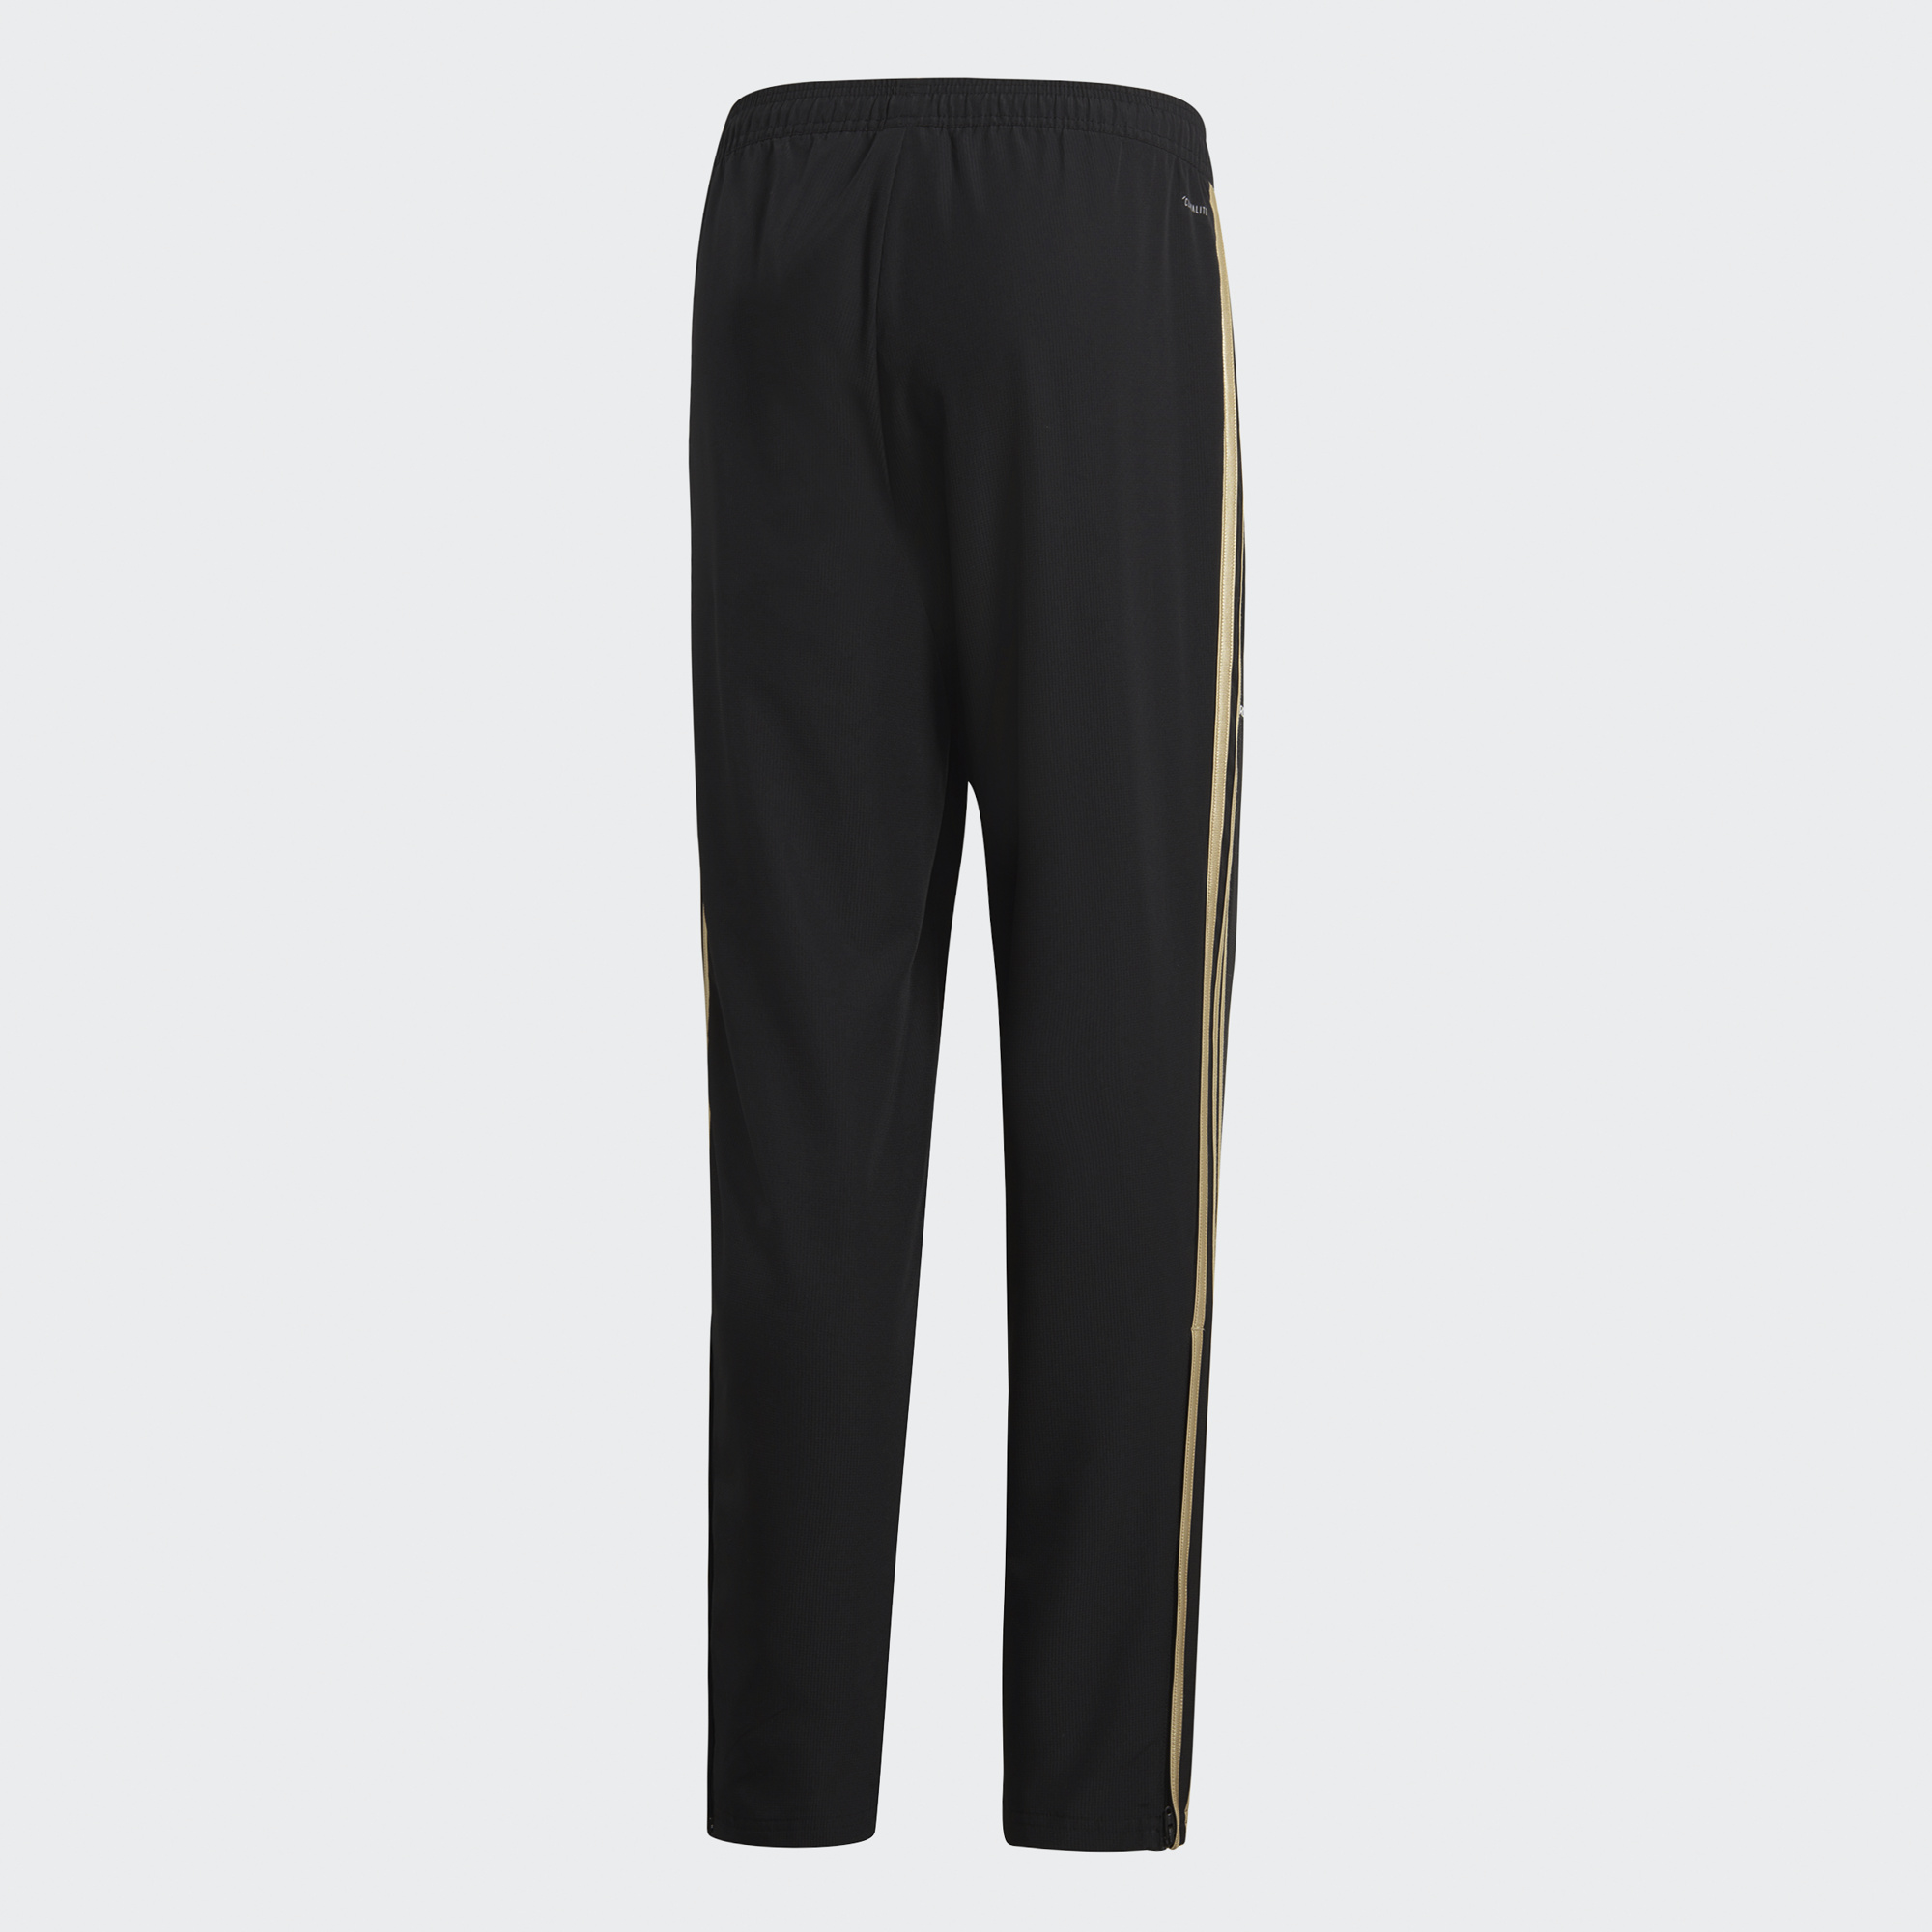 Pants Adidas CF1743 sports and entertainment for men men s casual jogging pants